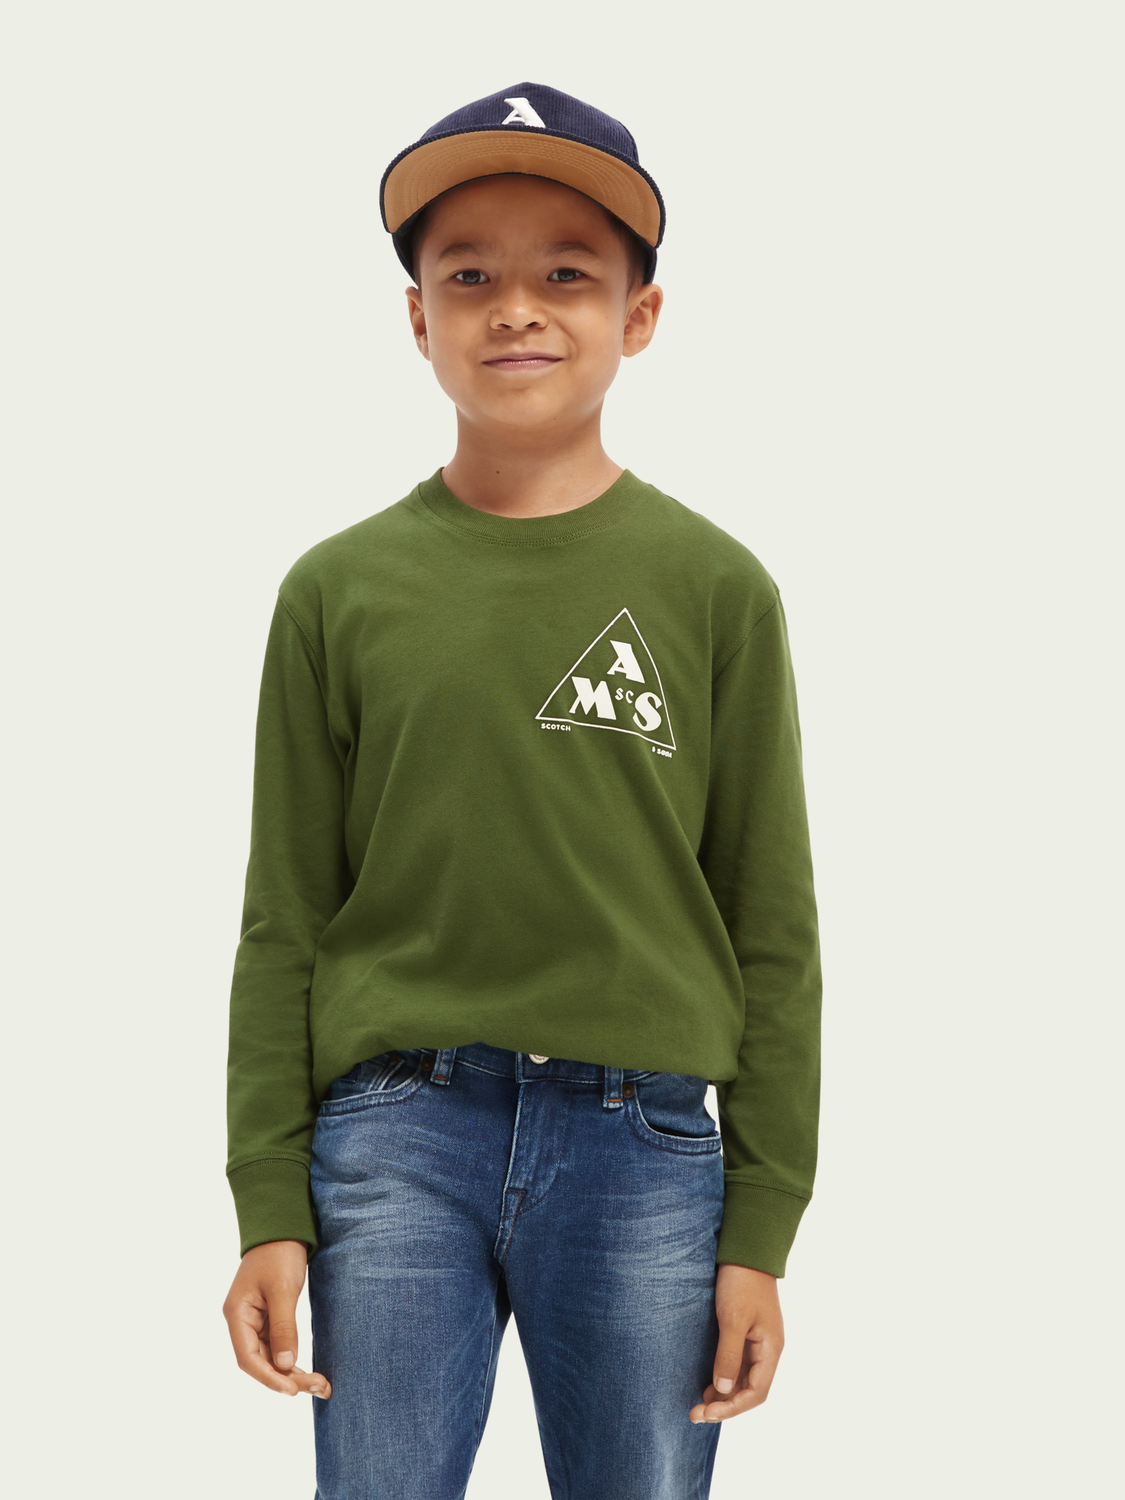 Kids Long-sleeved graphic T-shirt